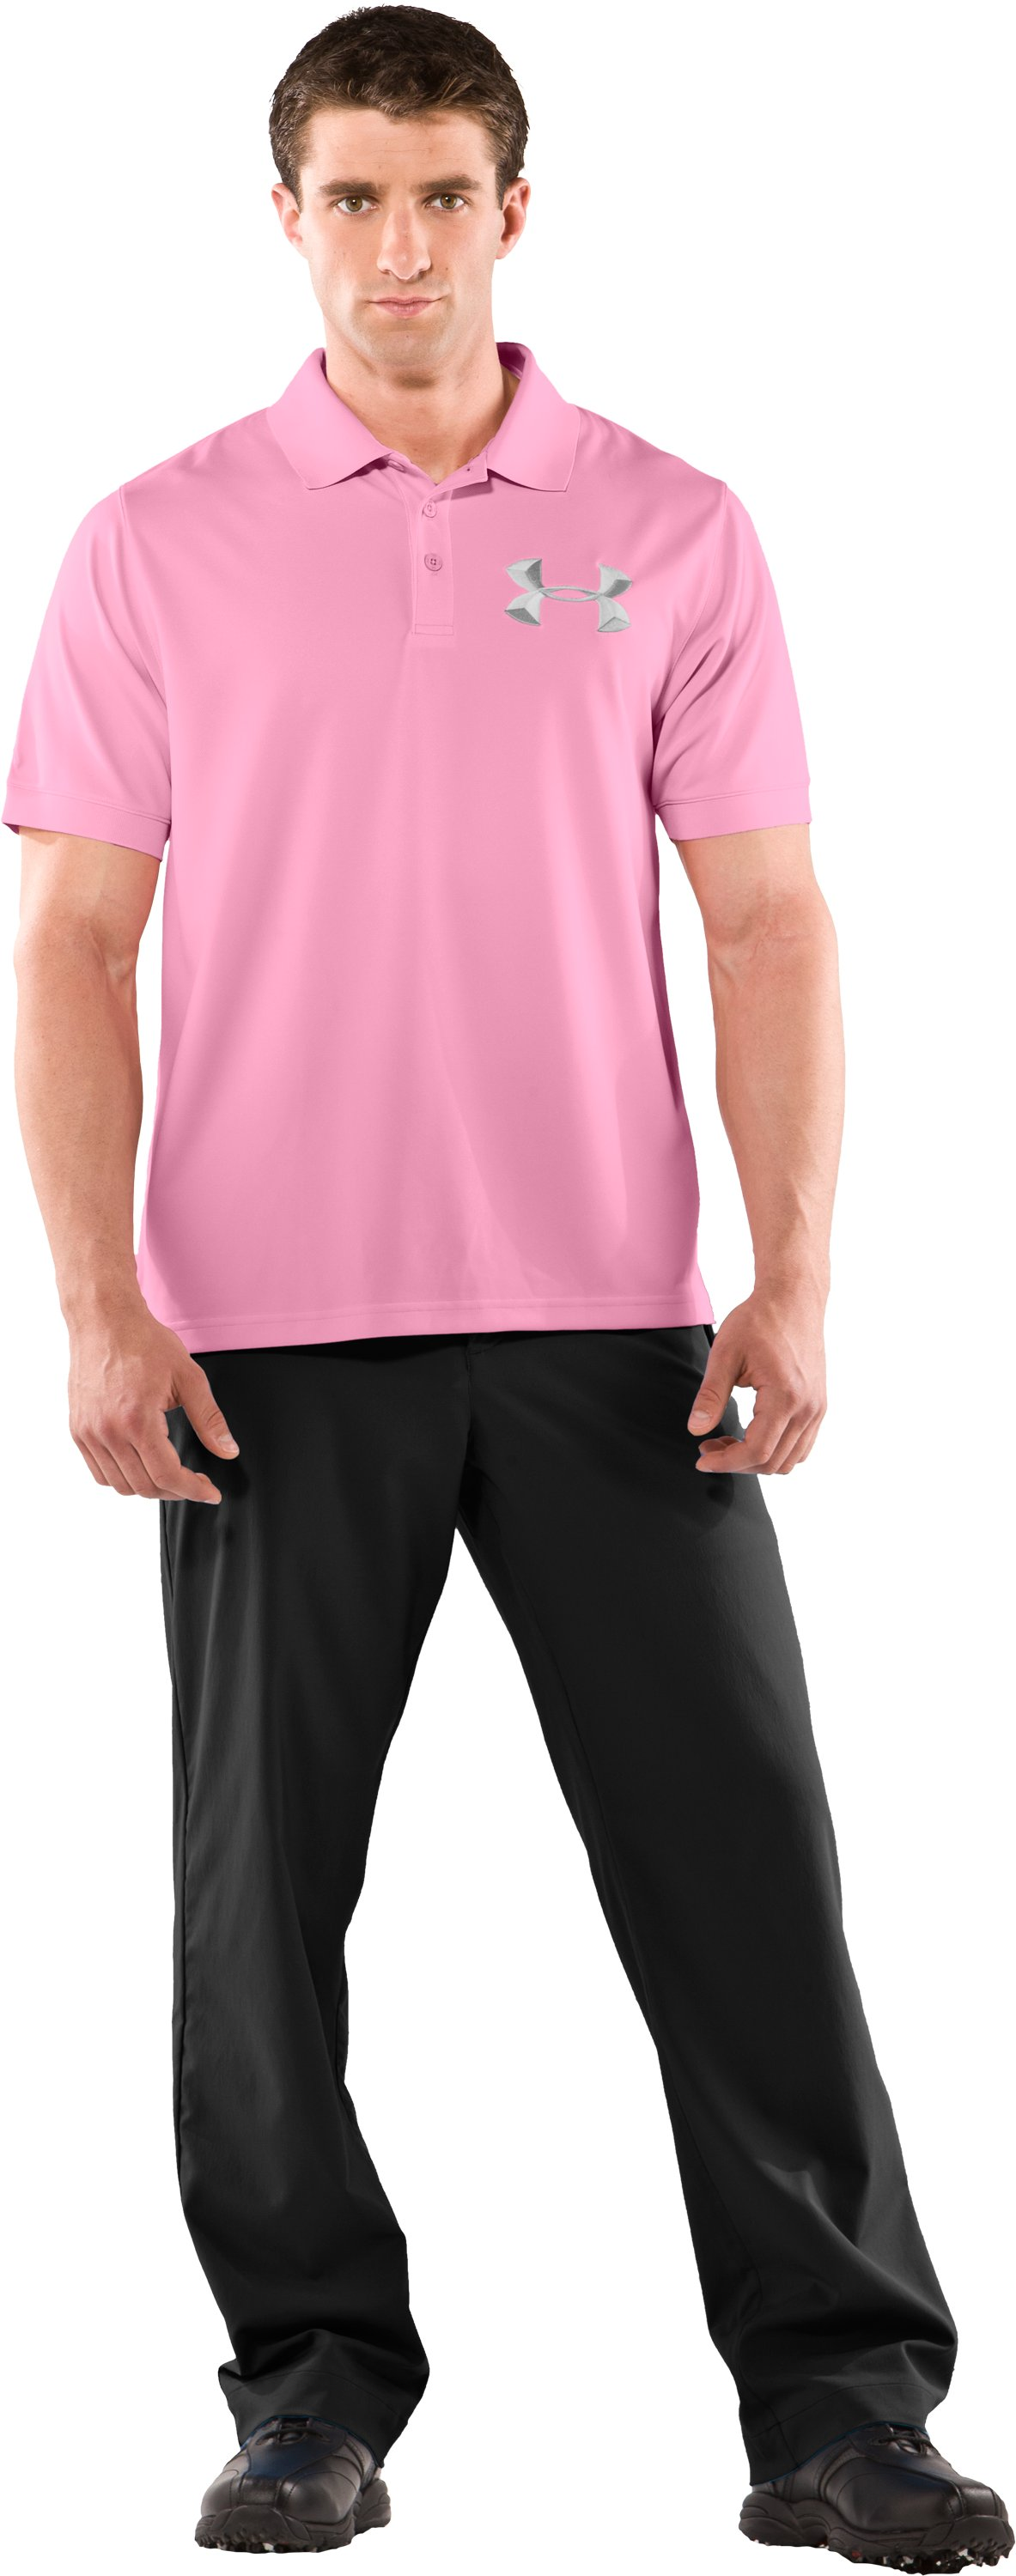 Power In Pink® UA Exploded Logo Polo Shirt, True Pink, Front